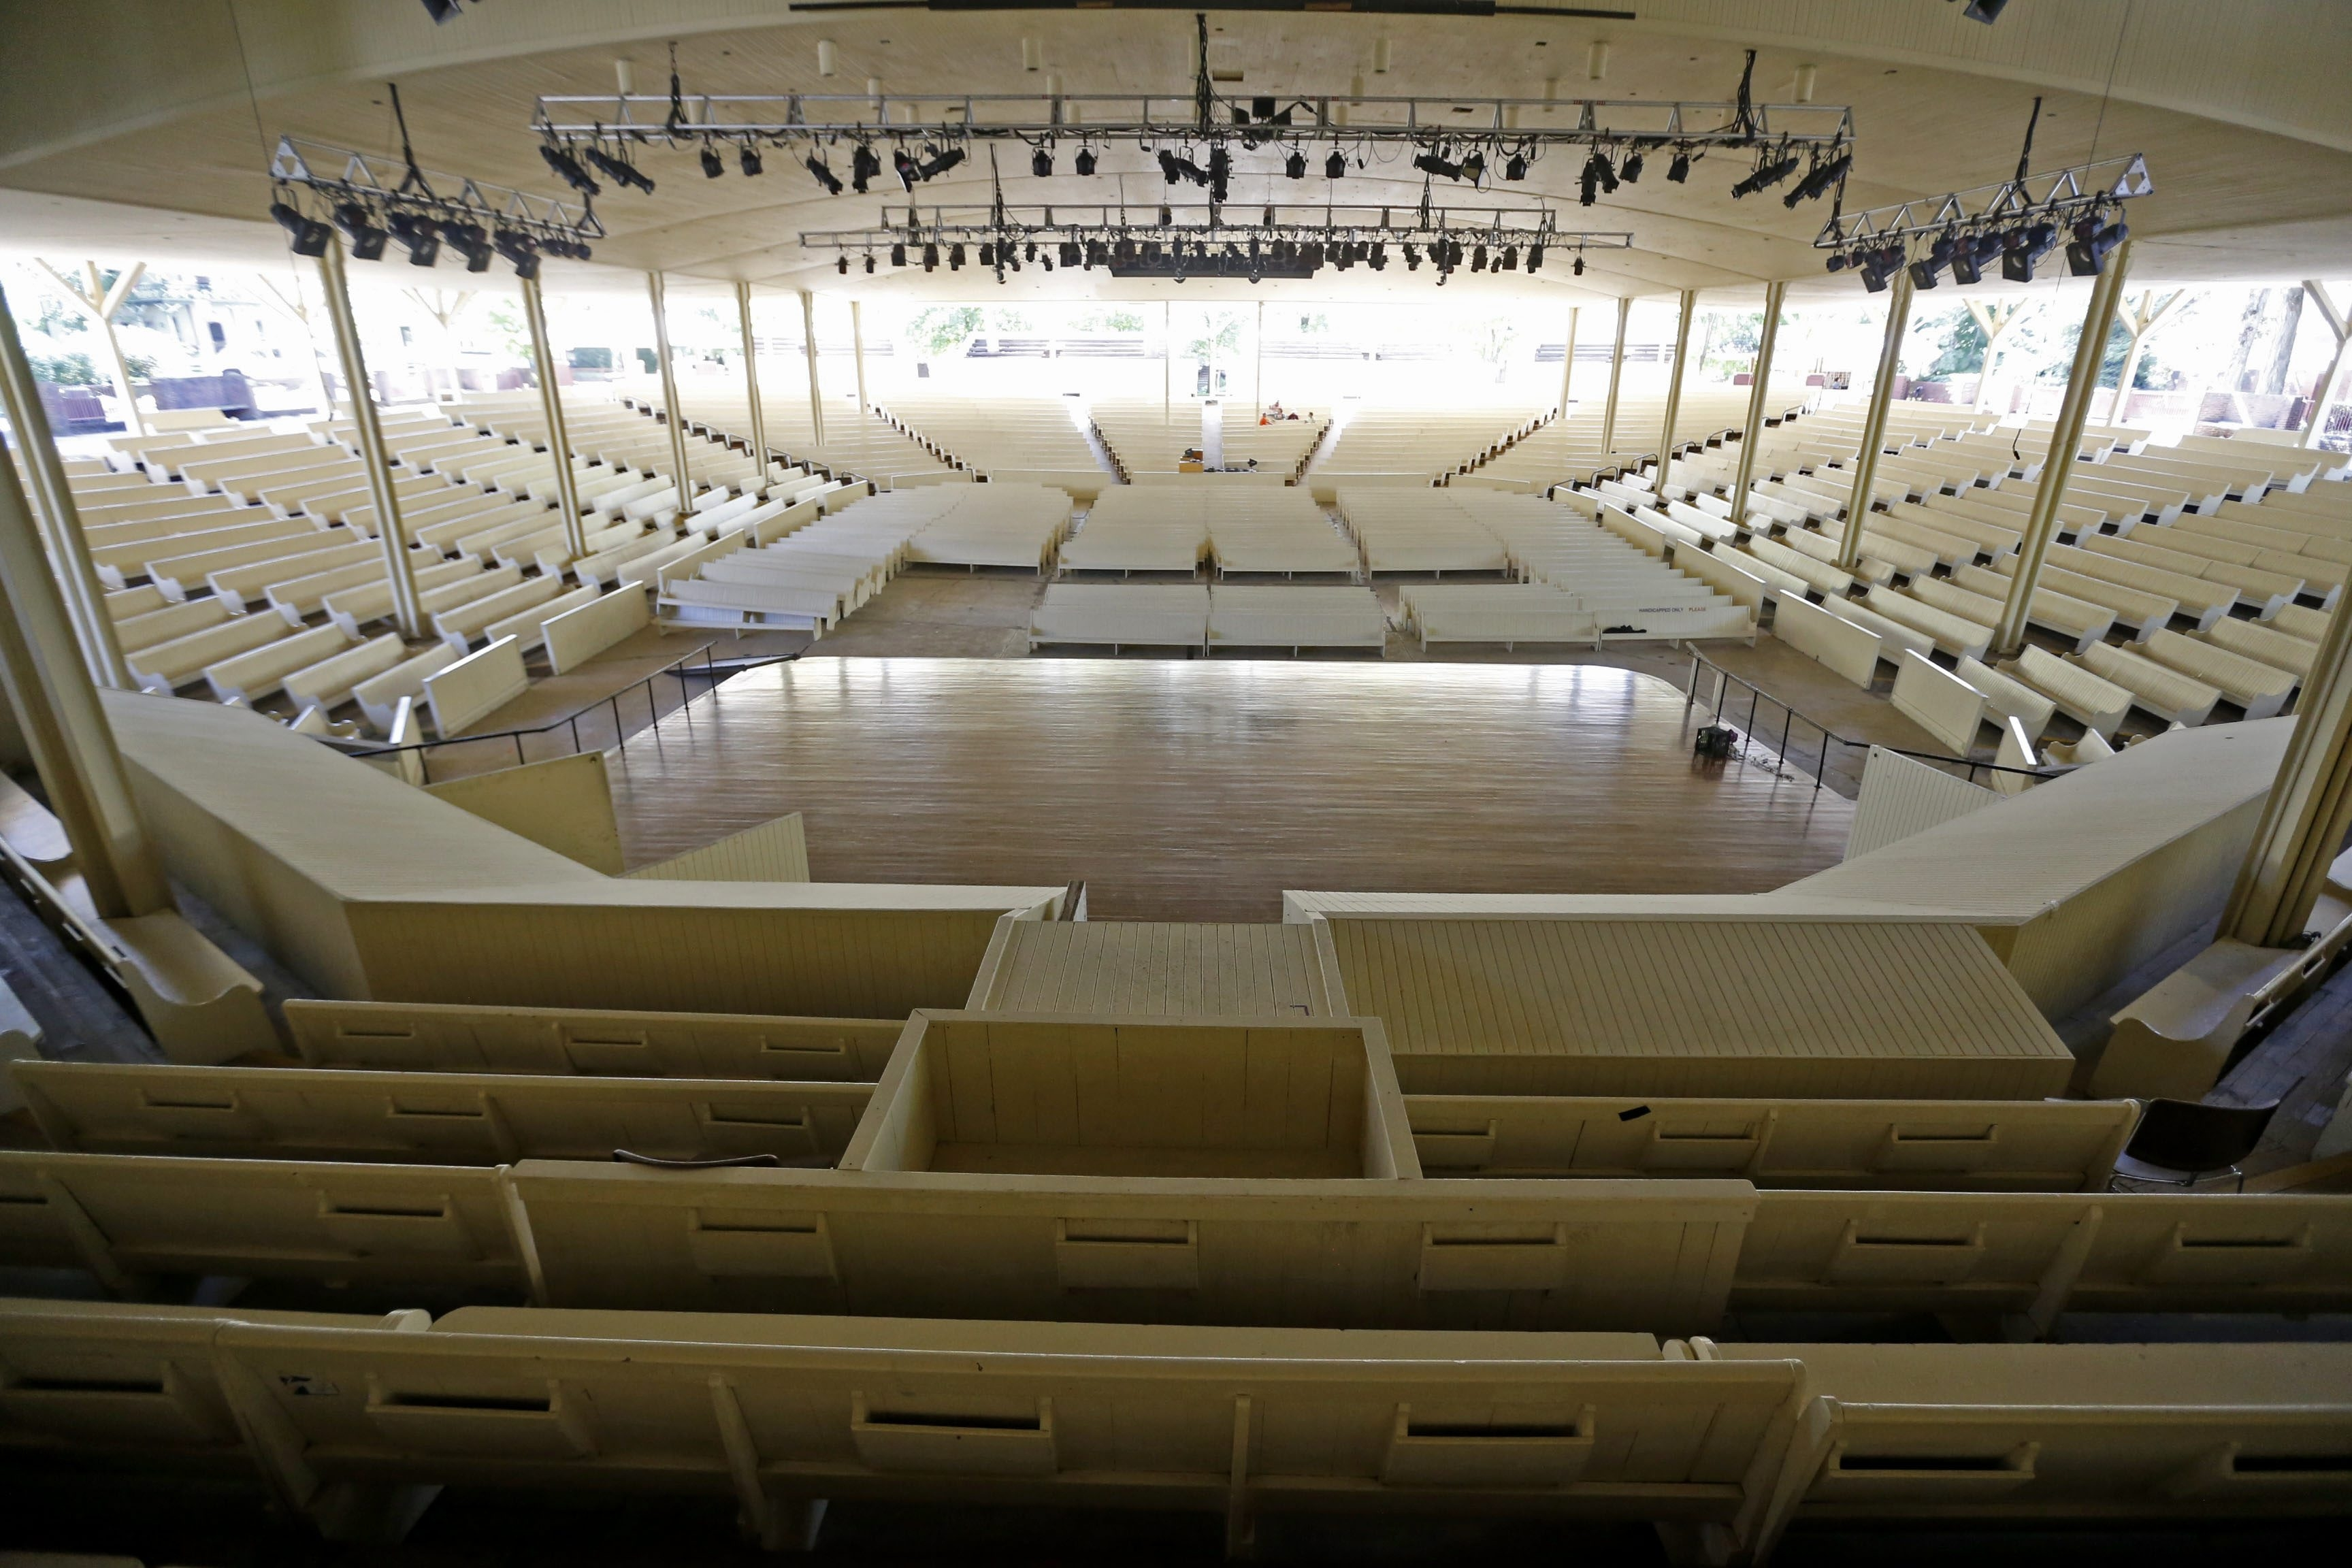 The indispensable value of authenticity: Chautauqua Amphitheater connects us to our extraordinary past